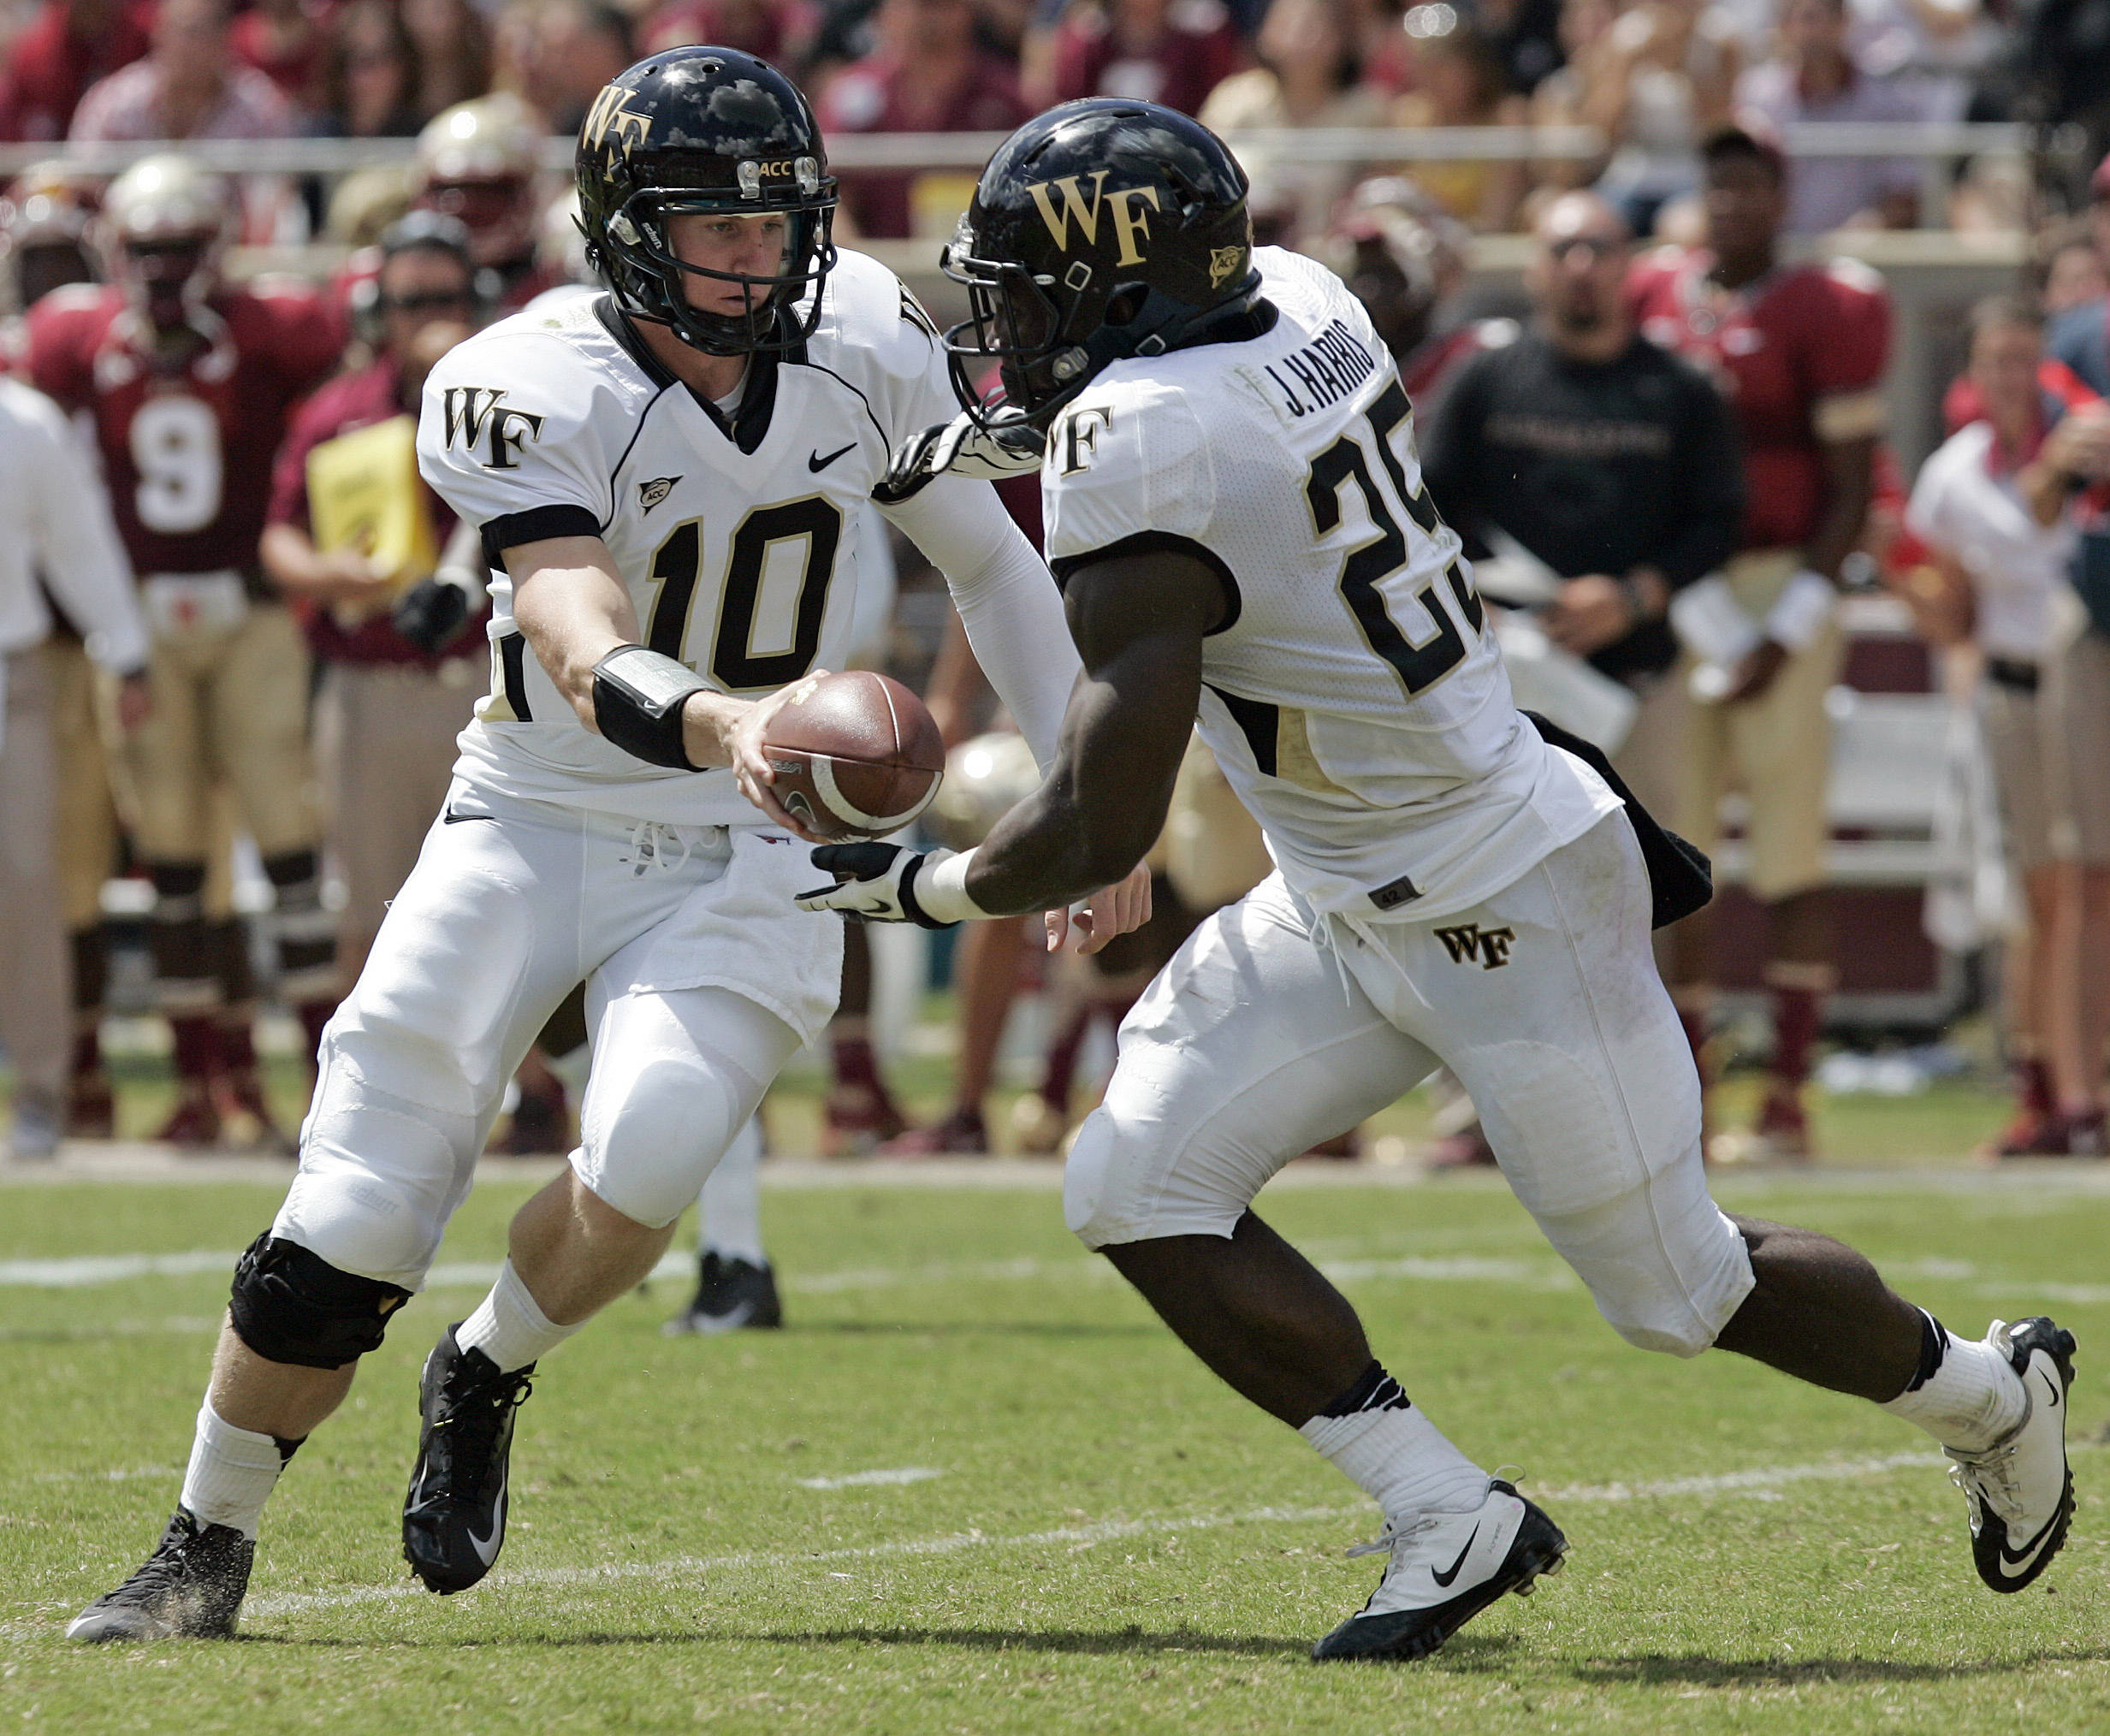 Wake Forest's quarterback Tanner Price, left, hands off to running back Josh Harris as they try to run against Florida State. (AP Photo/Steve Cannon)